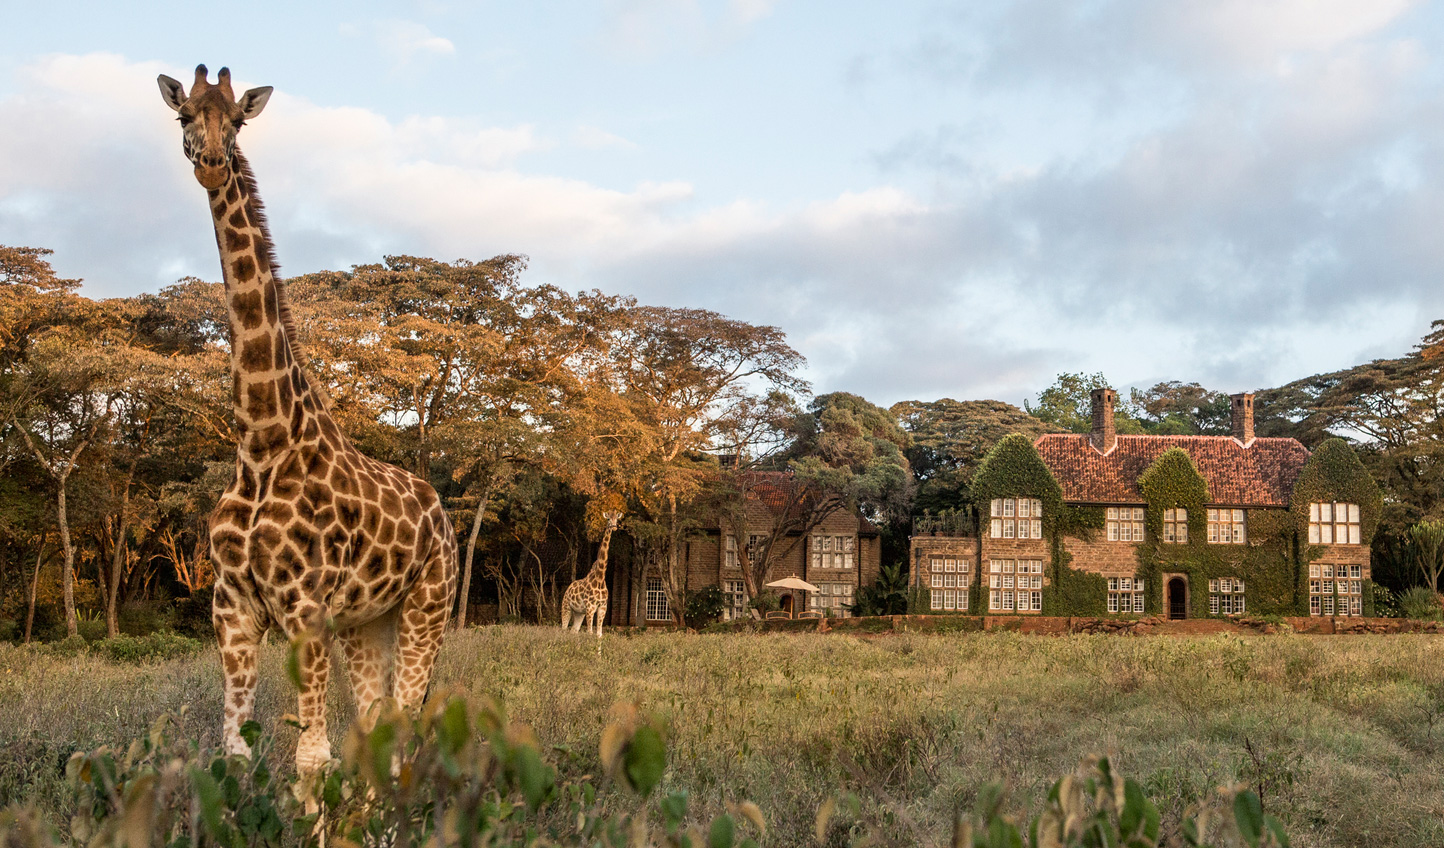 You can be assured of a friendly welcome at Giraffe Manor